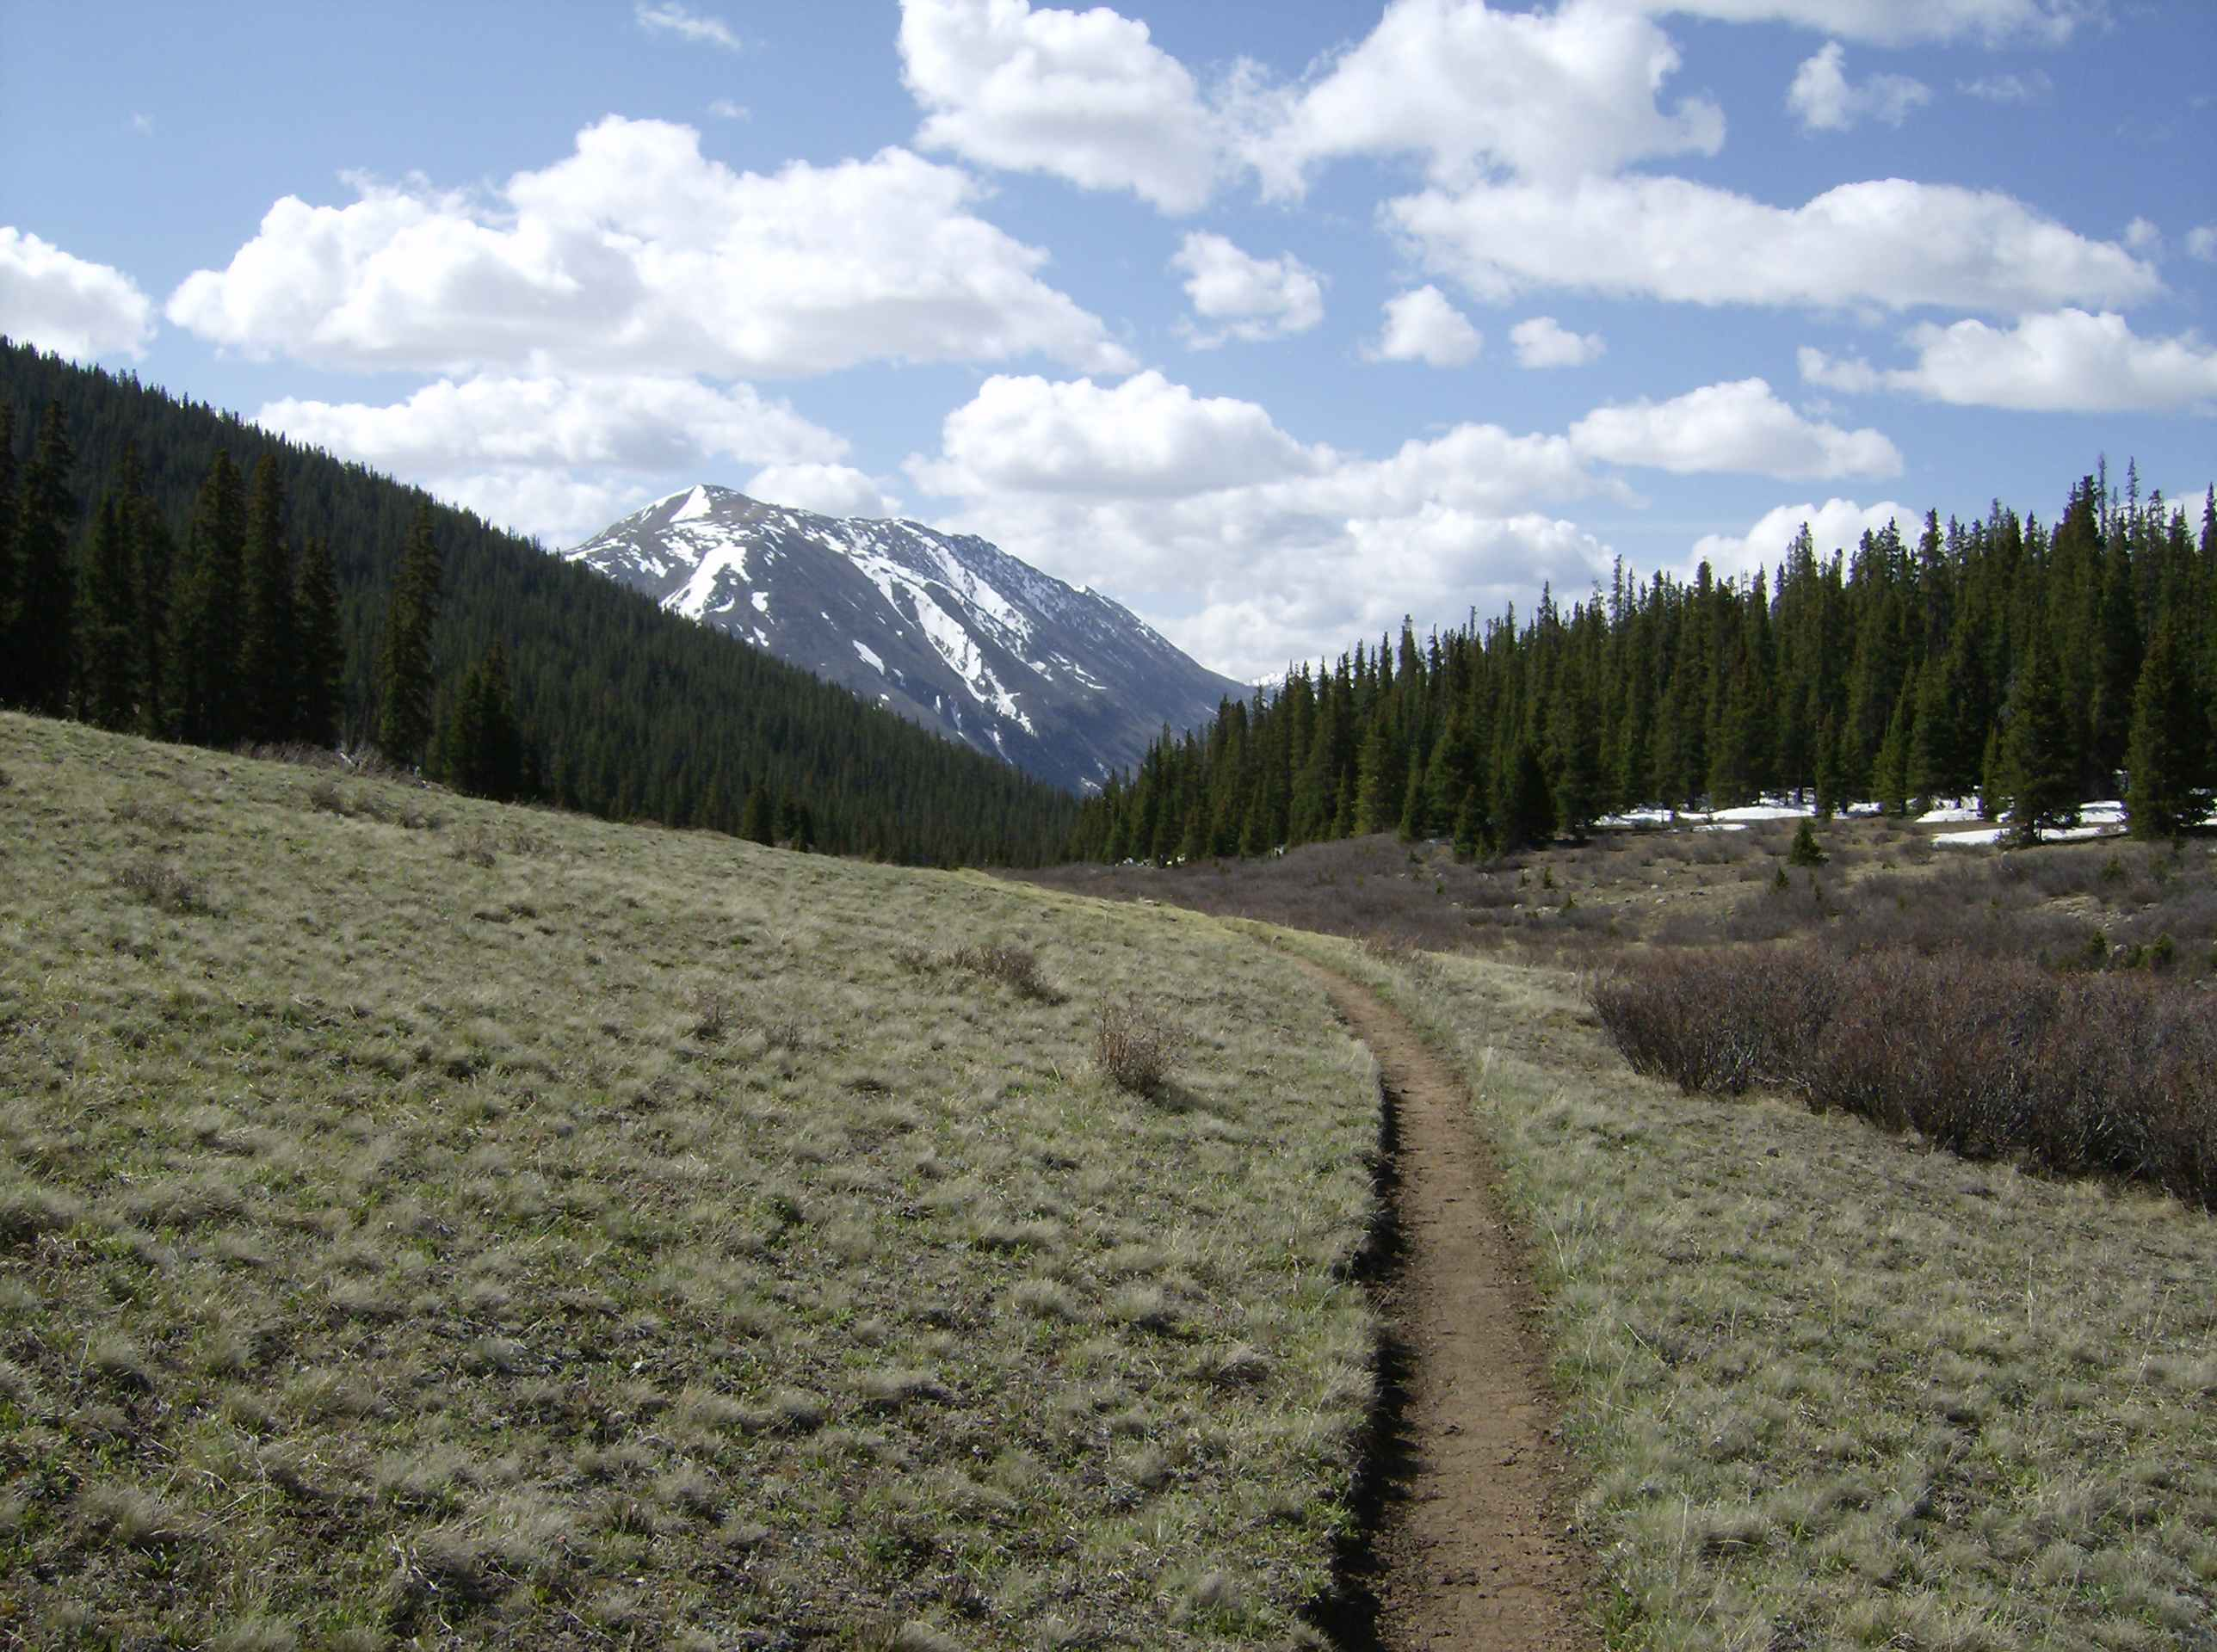 A picture of a Colorado Trail